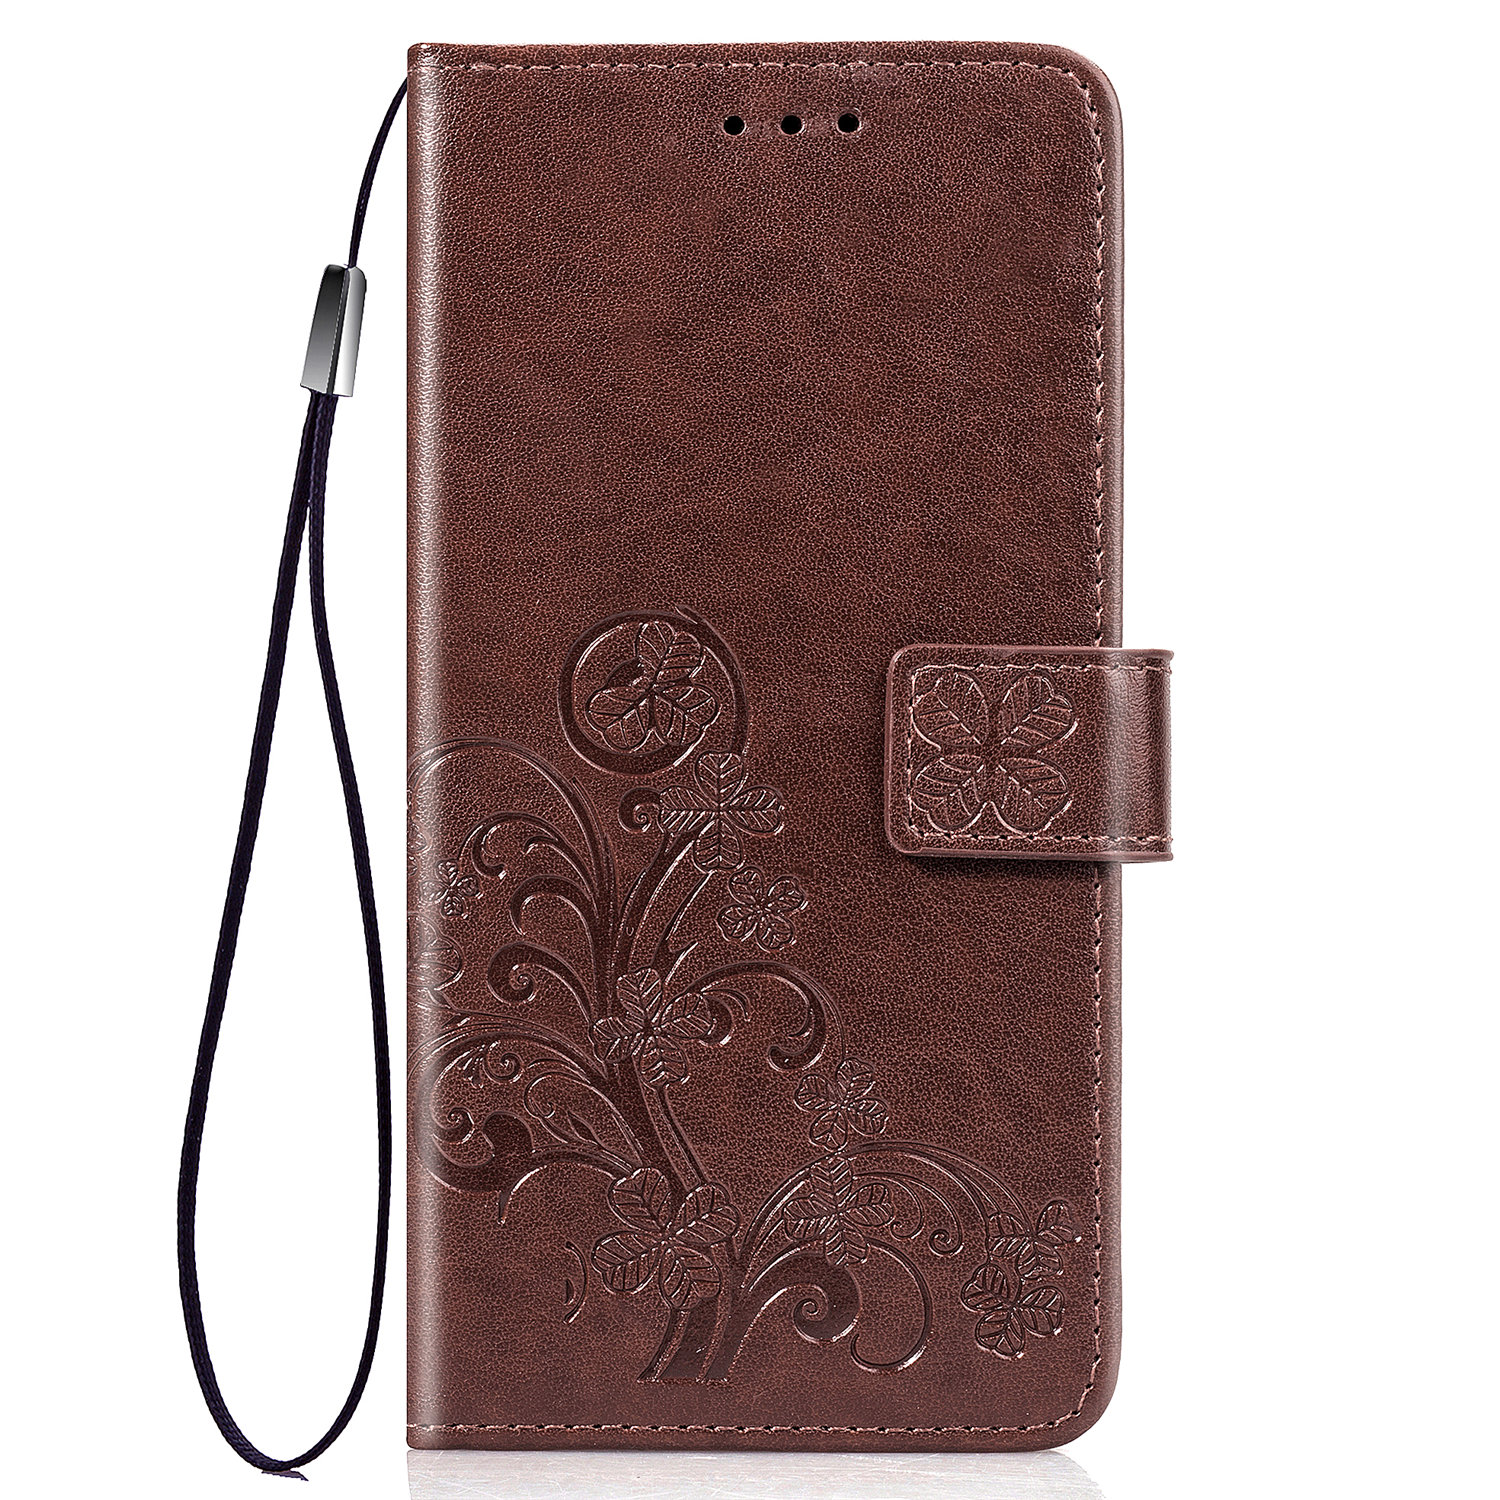 PU Leather Flip Case For <font><b>Sony</b></font> <font><b>Xperia</b></font> <font><b>E1</b></font> D2004 <font><b>D2005</b></font> Dual D2104 D2114 D2105 case Card Holder Phone Cover For <font><b>Sony</b></font> <font><b>Xperia</b></font> <font><b>E1</b></font> Dual image